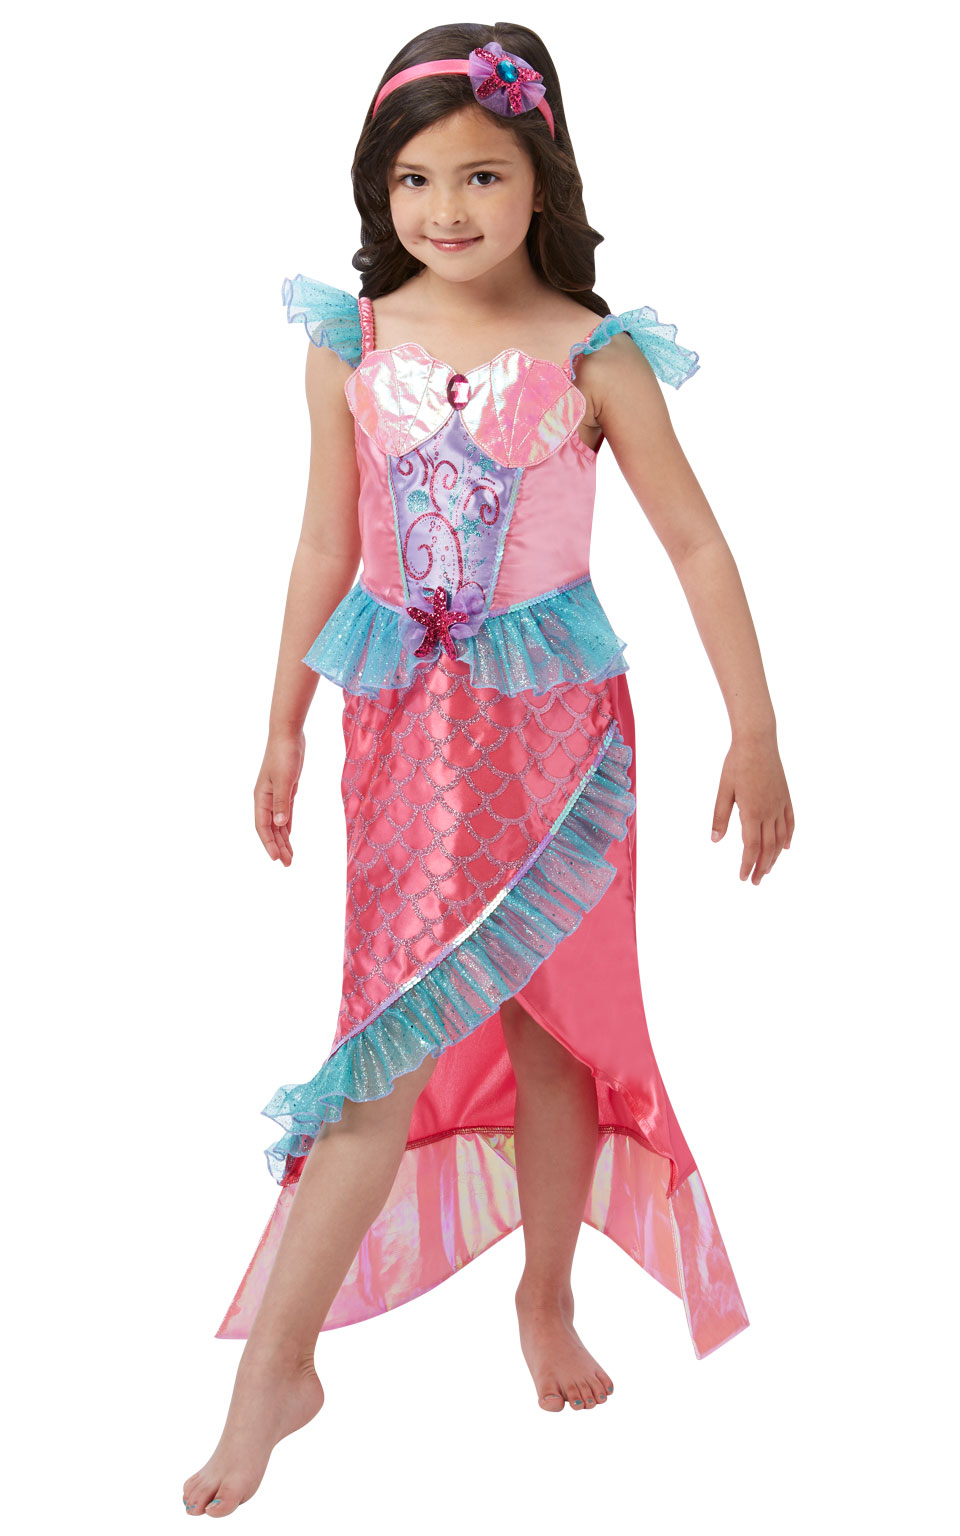 Child Mermaid Princess Costume Fancy Dress Costumes & Party Supplies ...